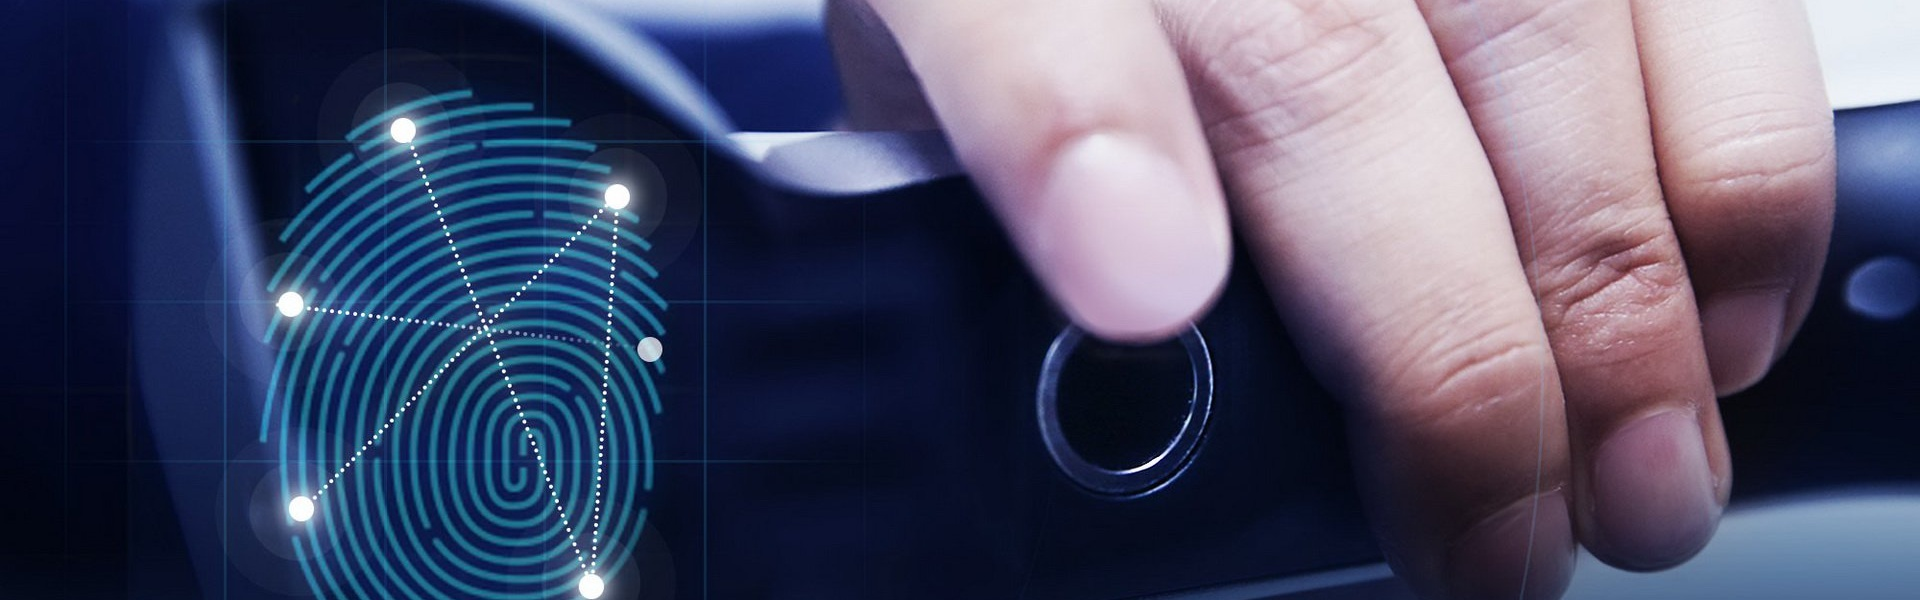 hyundai-fingerprint-technology_02.jpg